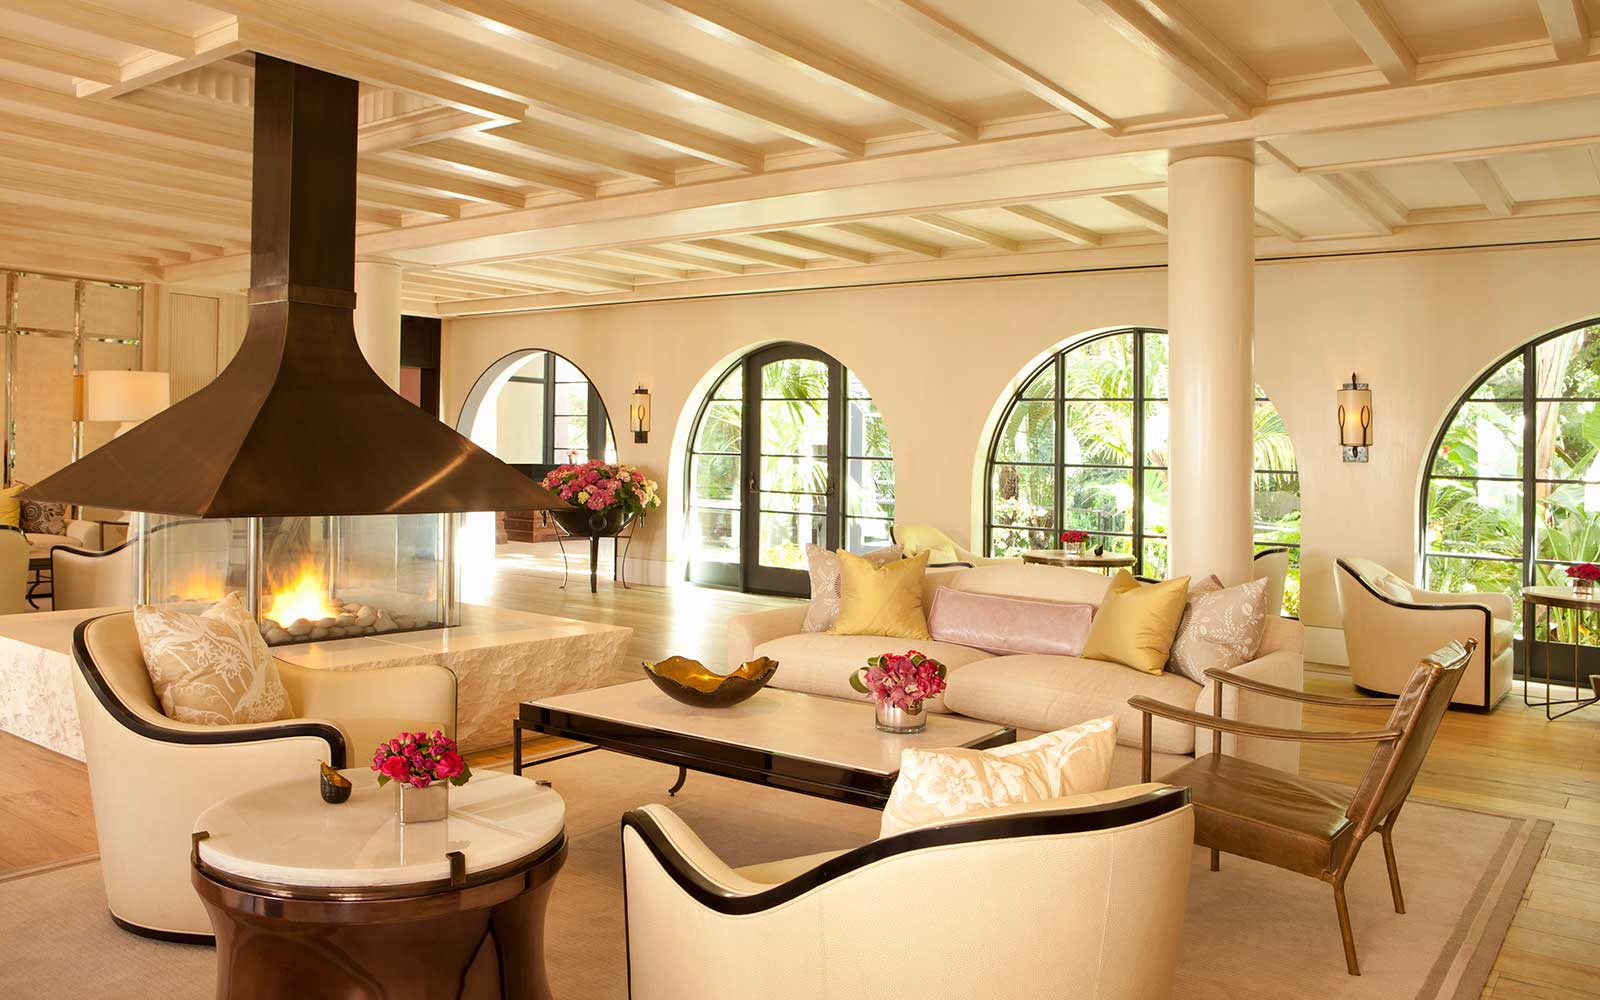 1. Hotel Bel-Air, Los Angeles